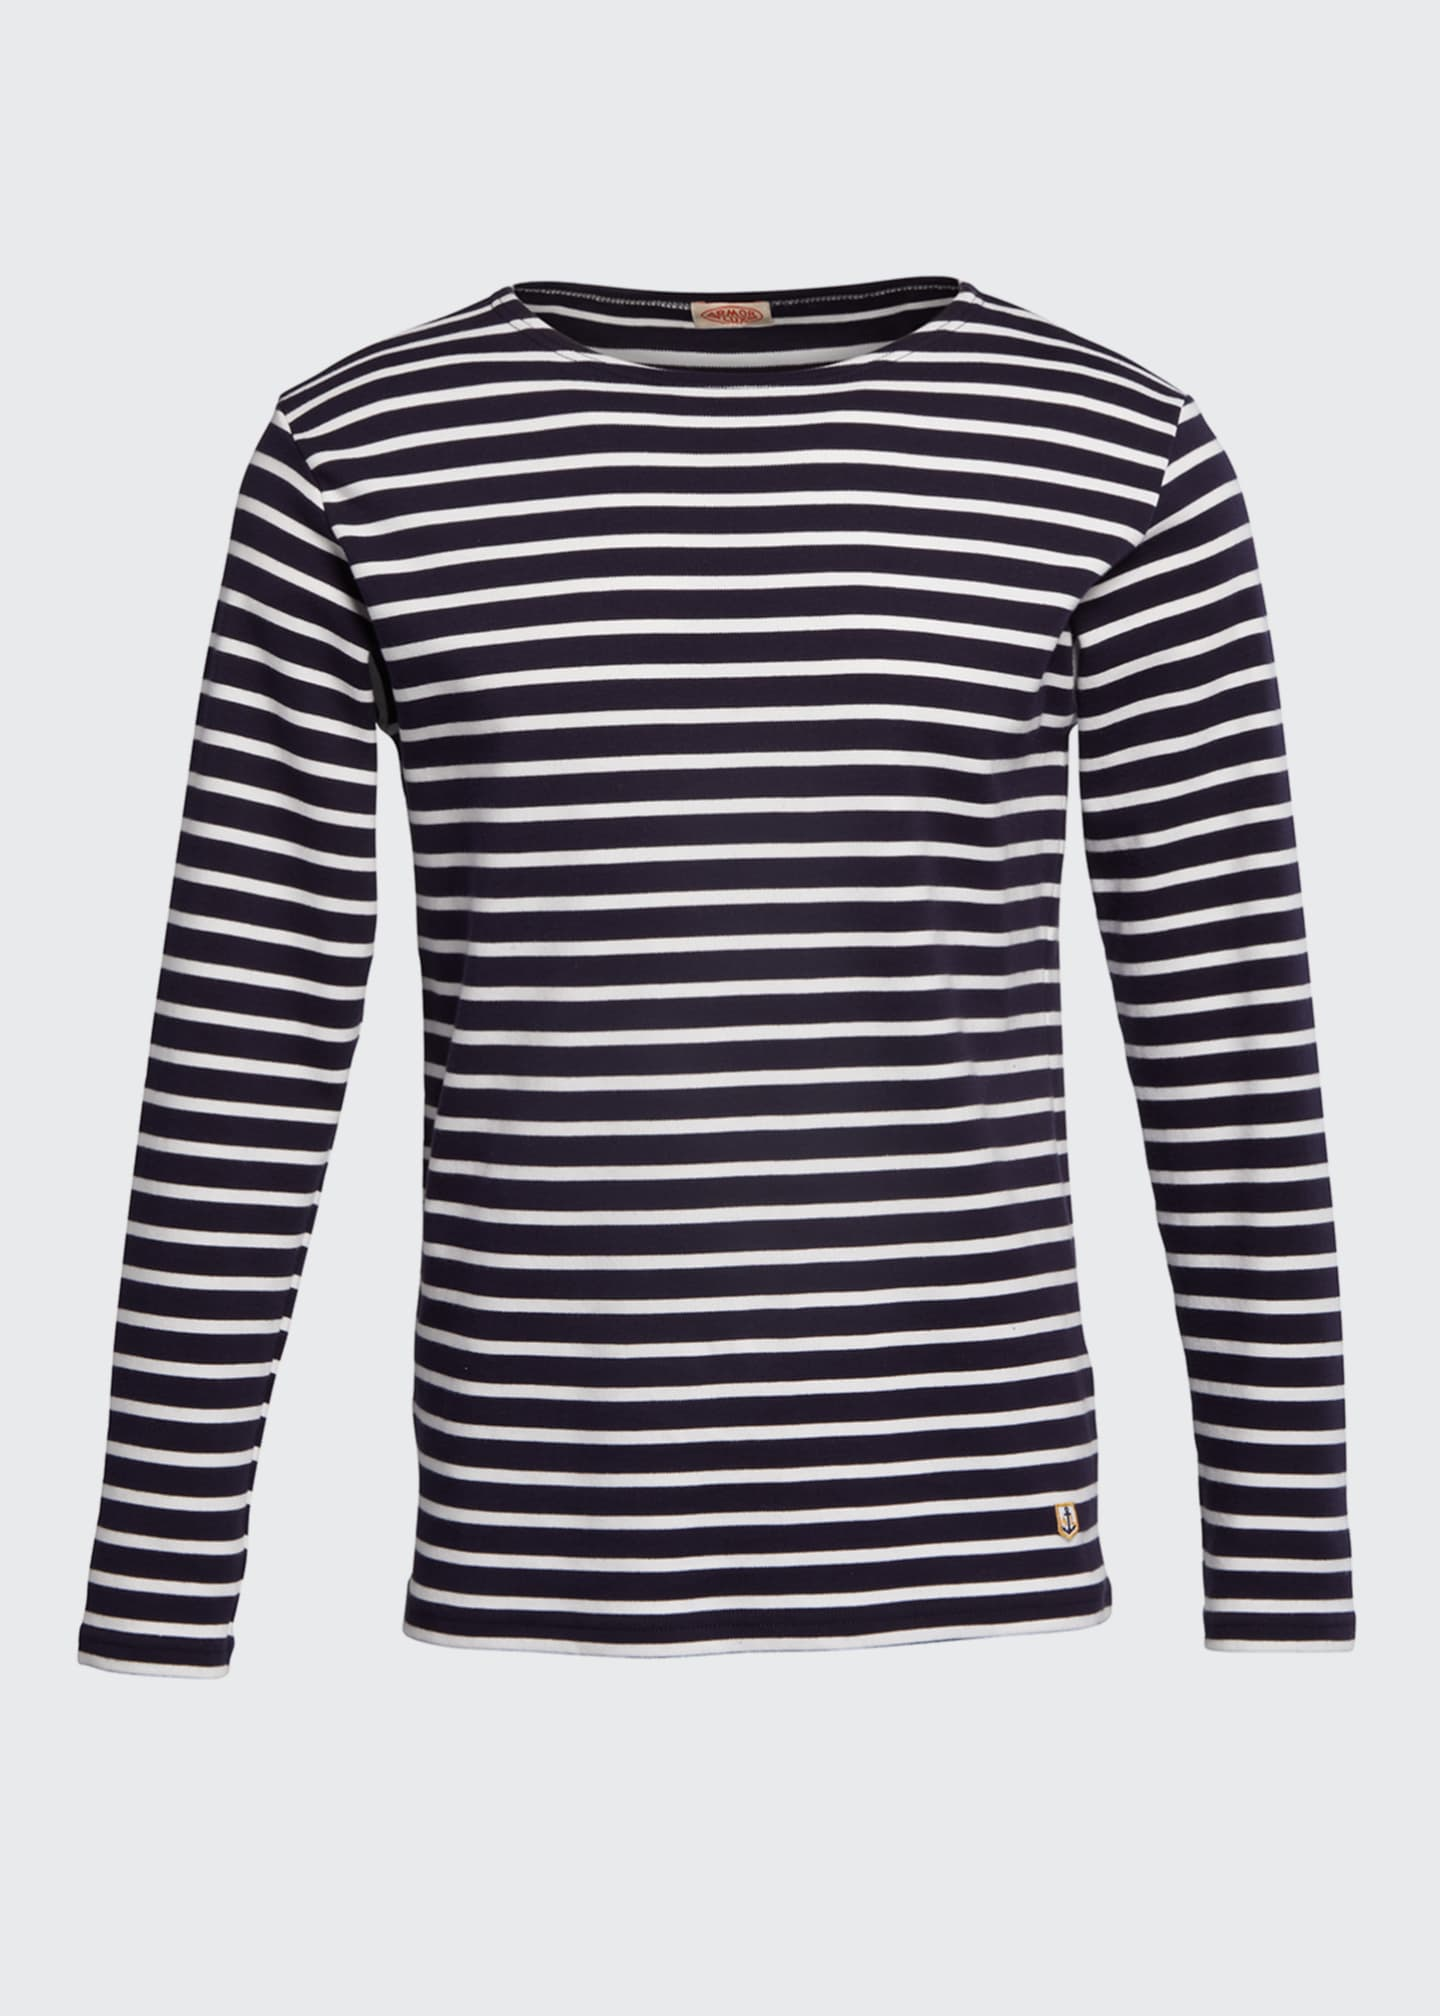 Image 5 of 5: Men's Marinire Heritage Striped Long-Sleeve T-Shirt